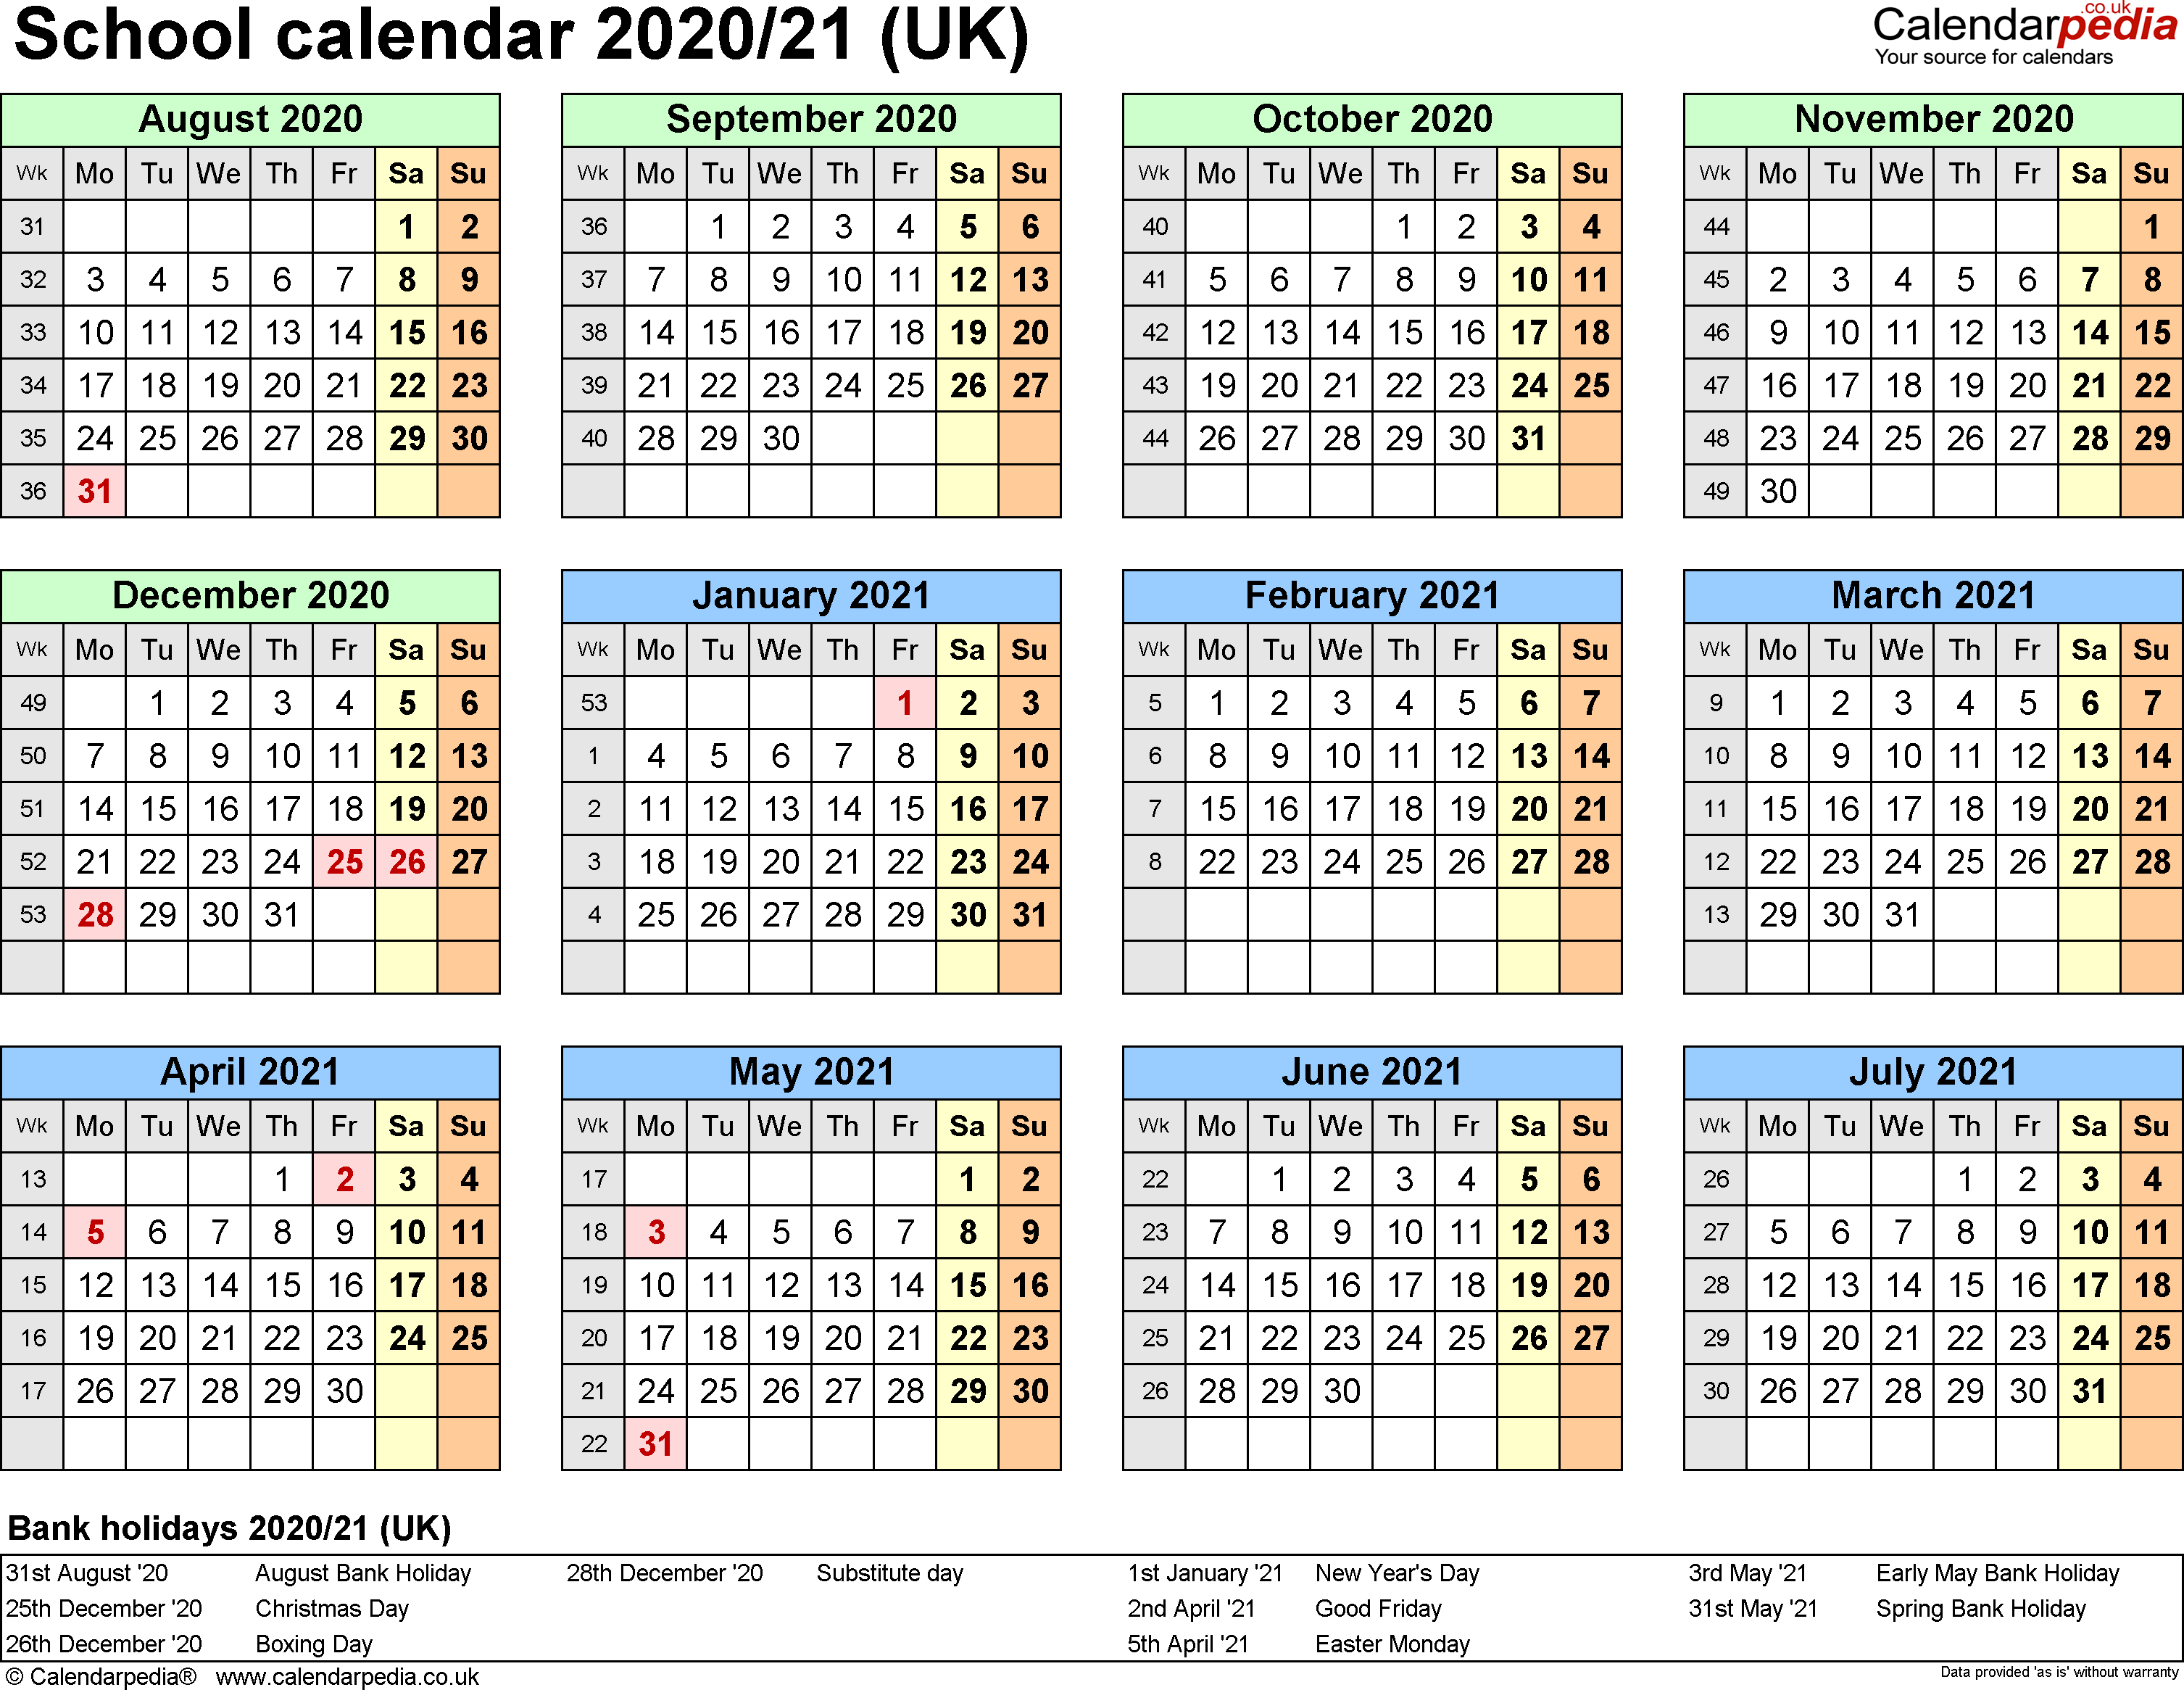 School Calendars 2020/2021 As Free Printable Word Templates